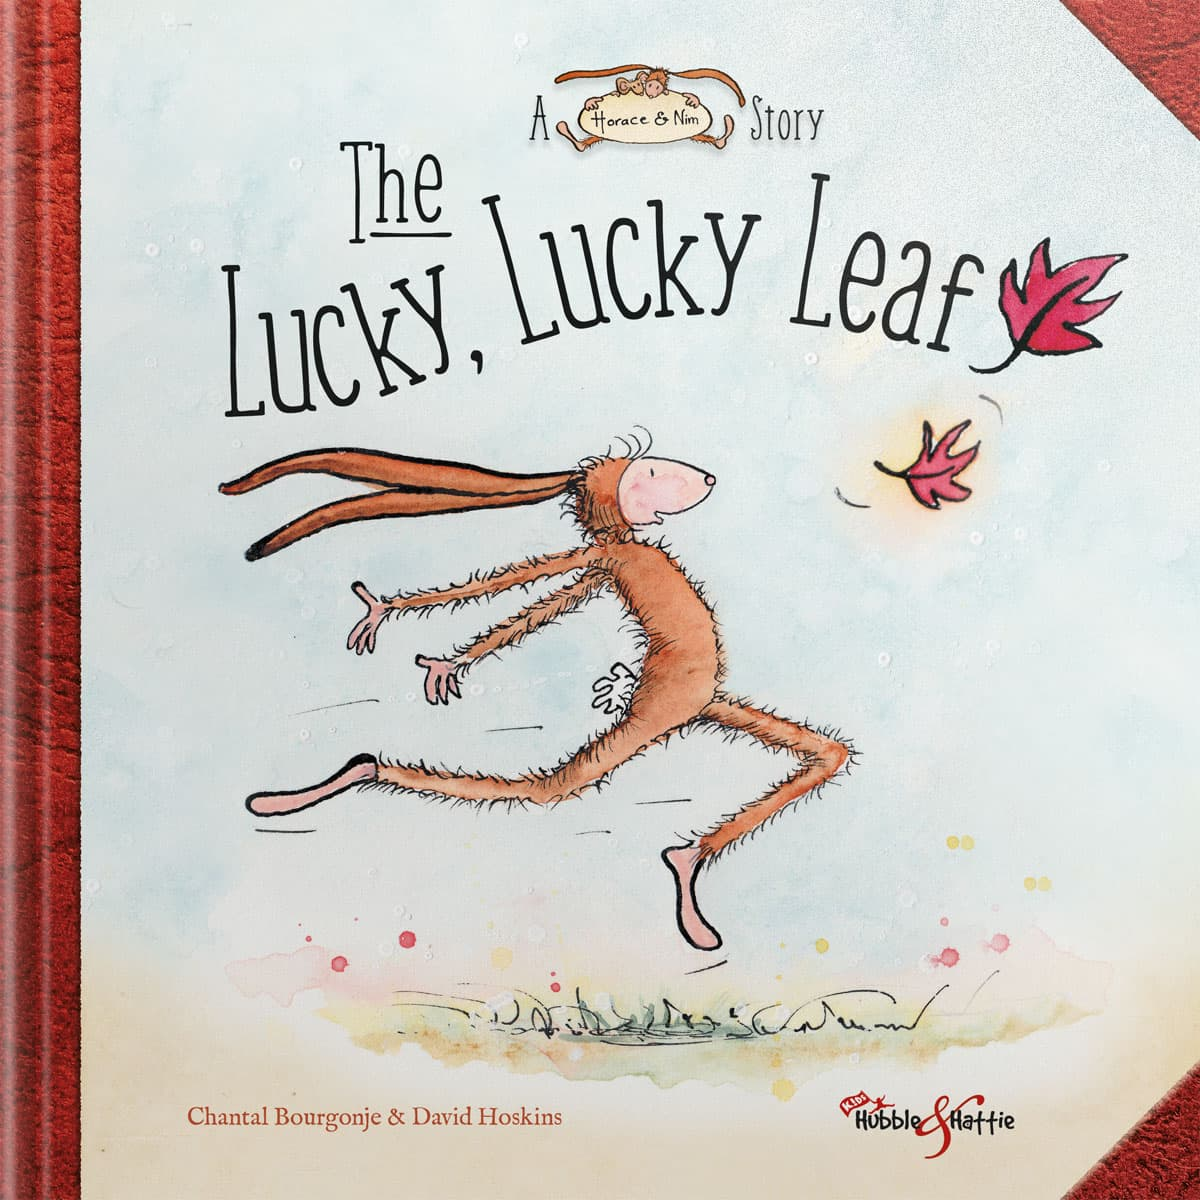 The Lucky, Lucky Leaf – A Horace and Nim Story